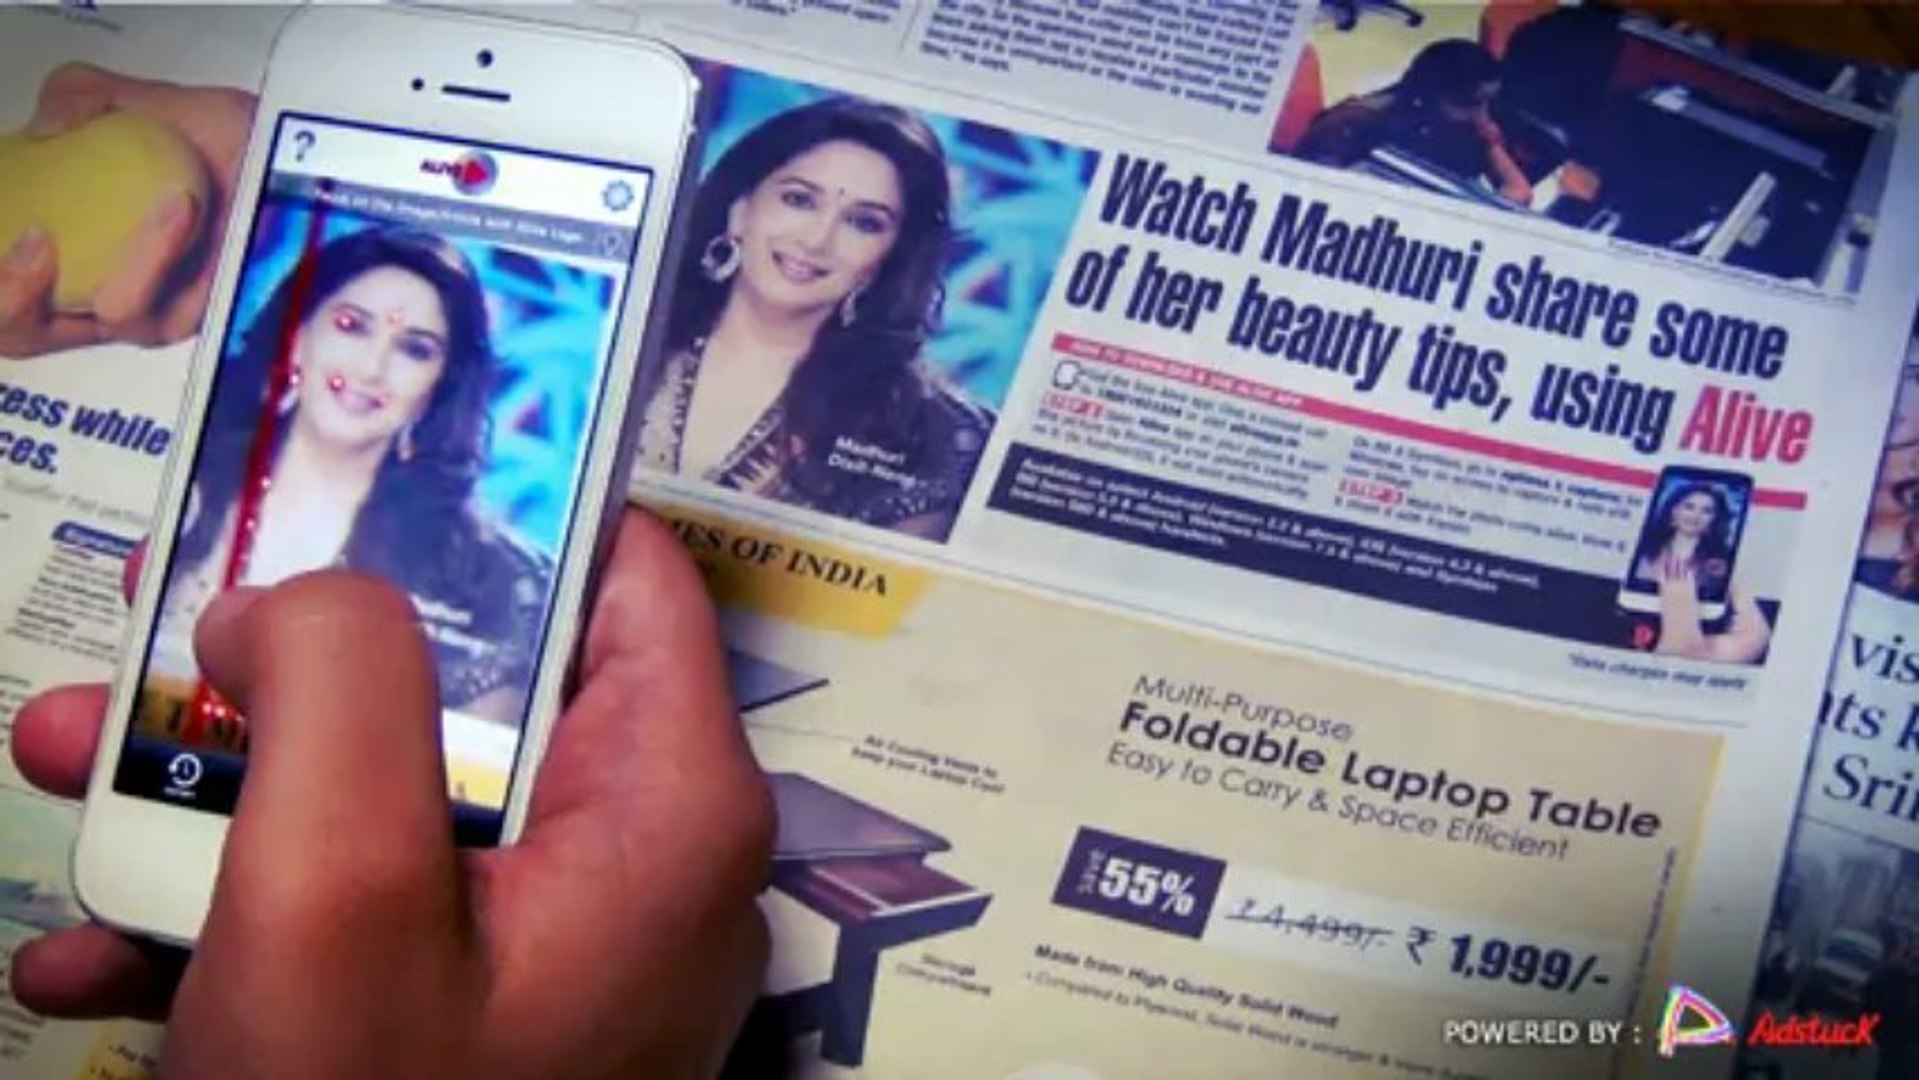 Watch Madhuri share some of her beauty tips using Alive